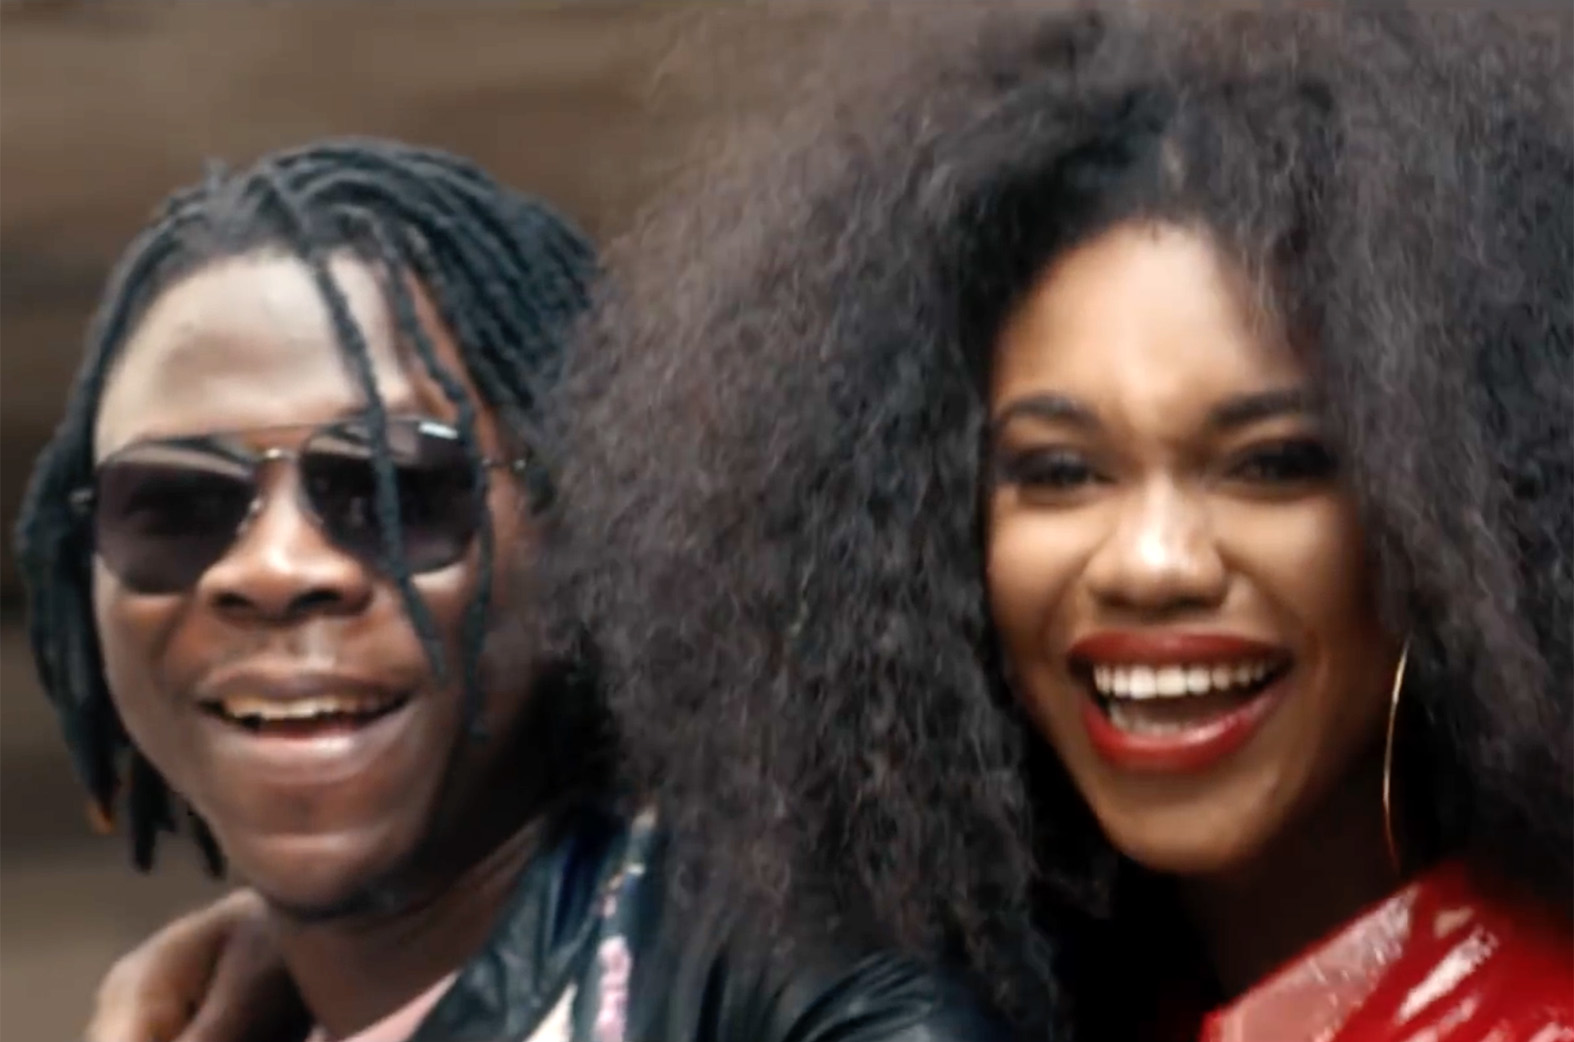 With You by Becca feat. Stonebwoy